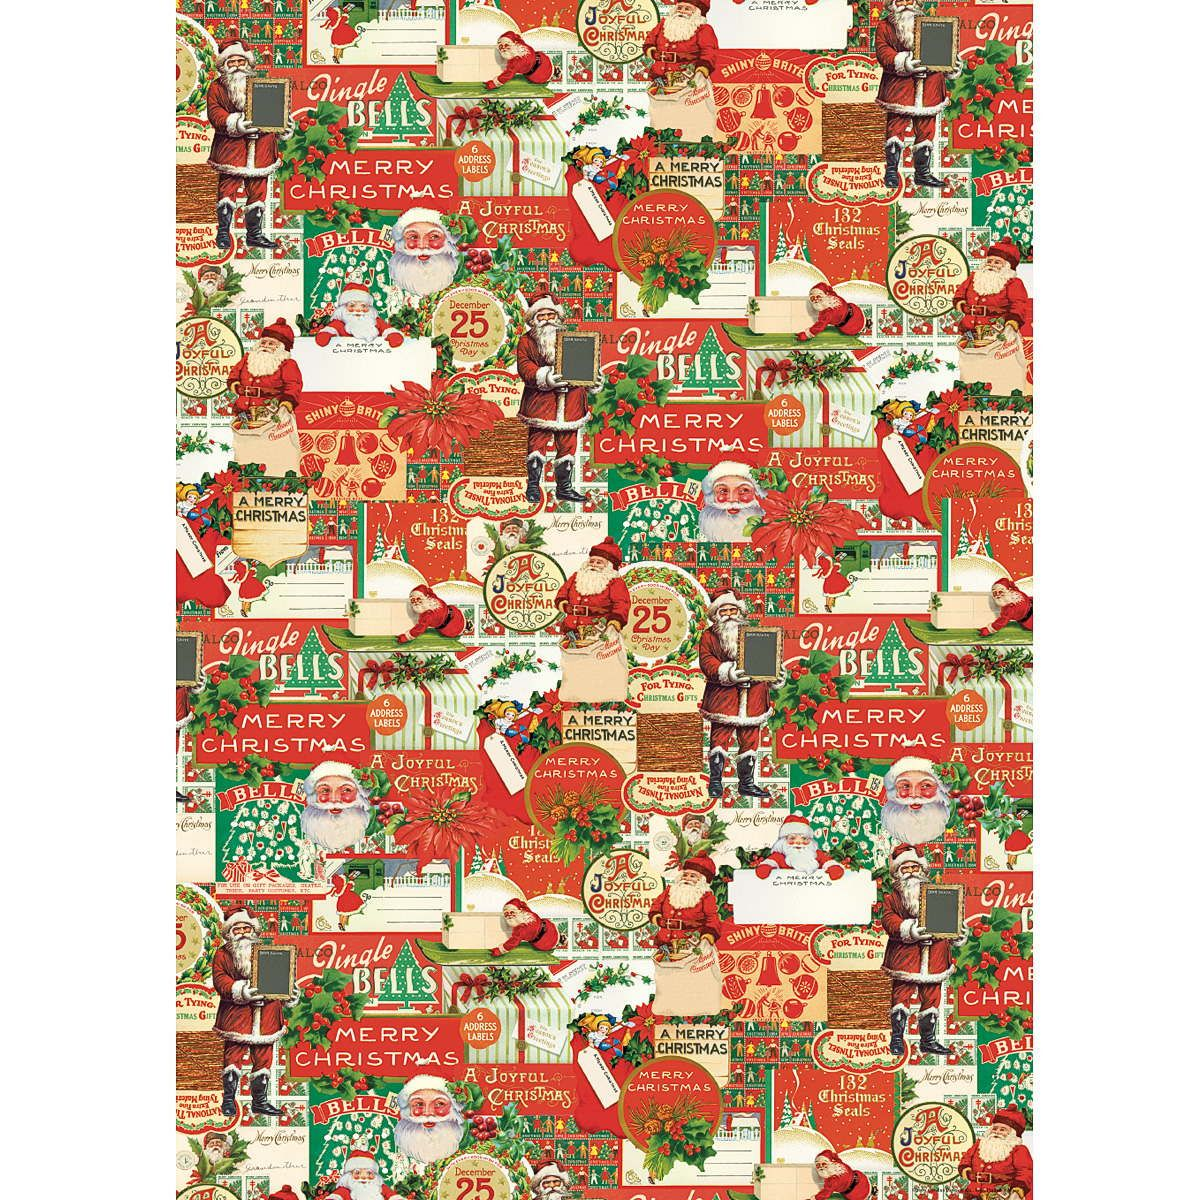 This Vintage Santa Claus Gift Wrap from Cavallini is